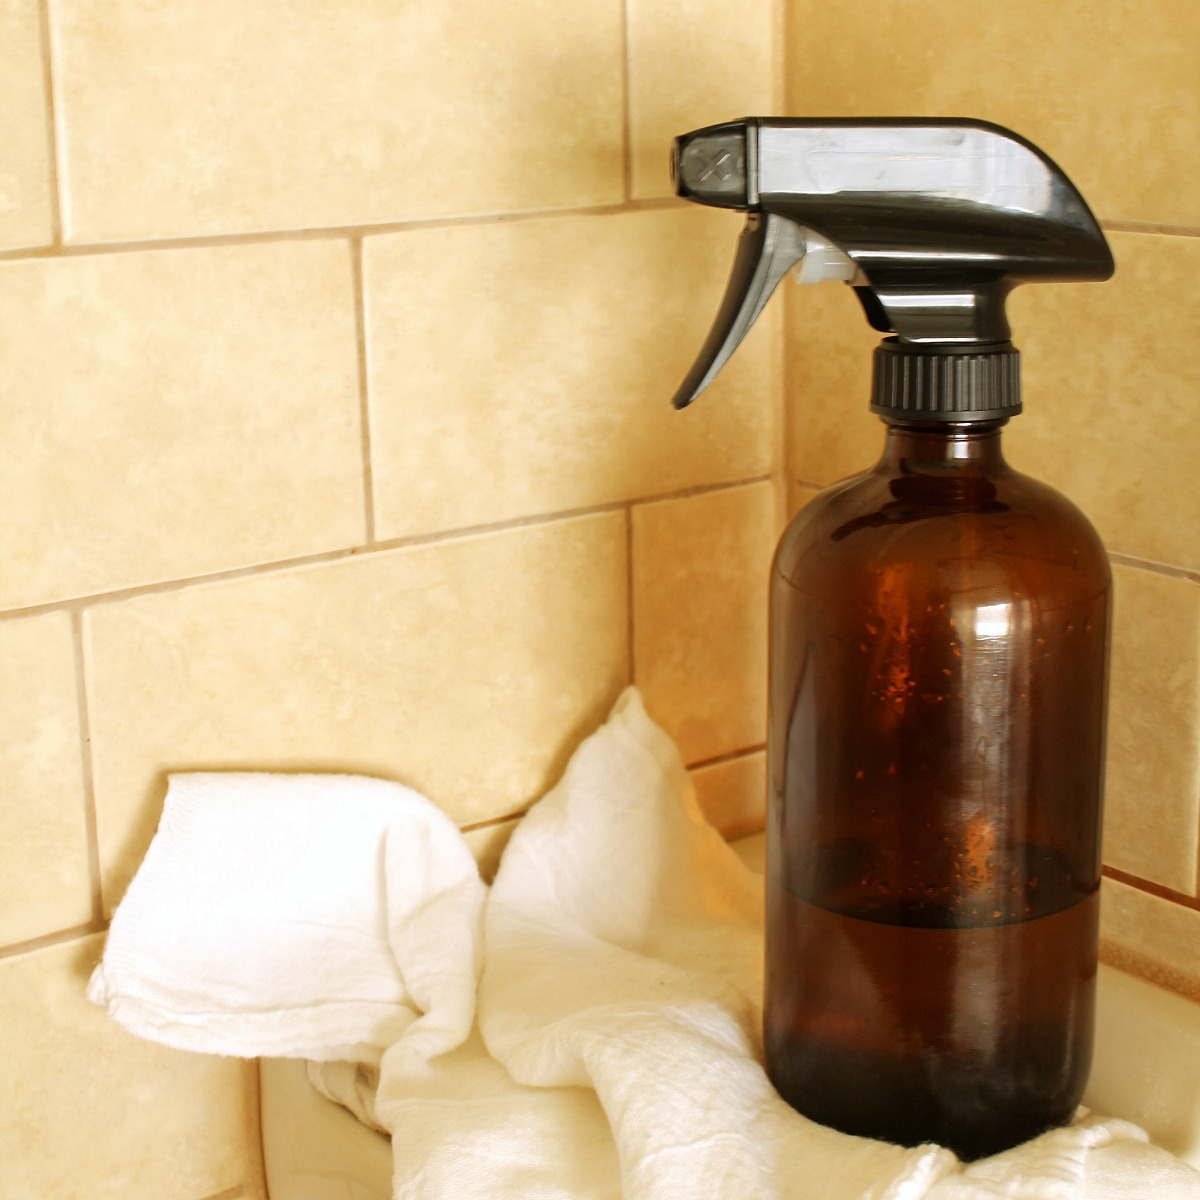 Daily Shower Cleaner Recipe from RecipeswithEssentialOils.com